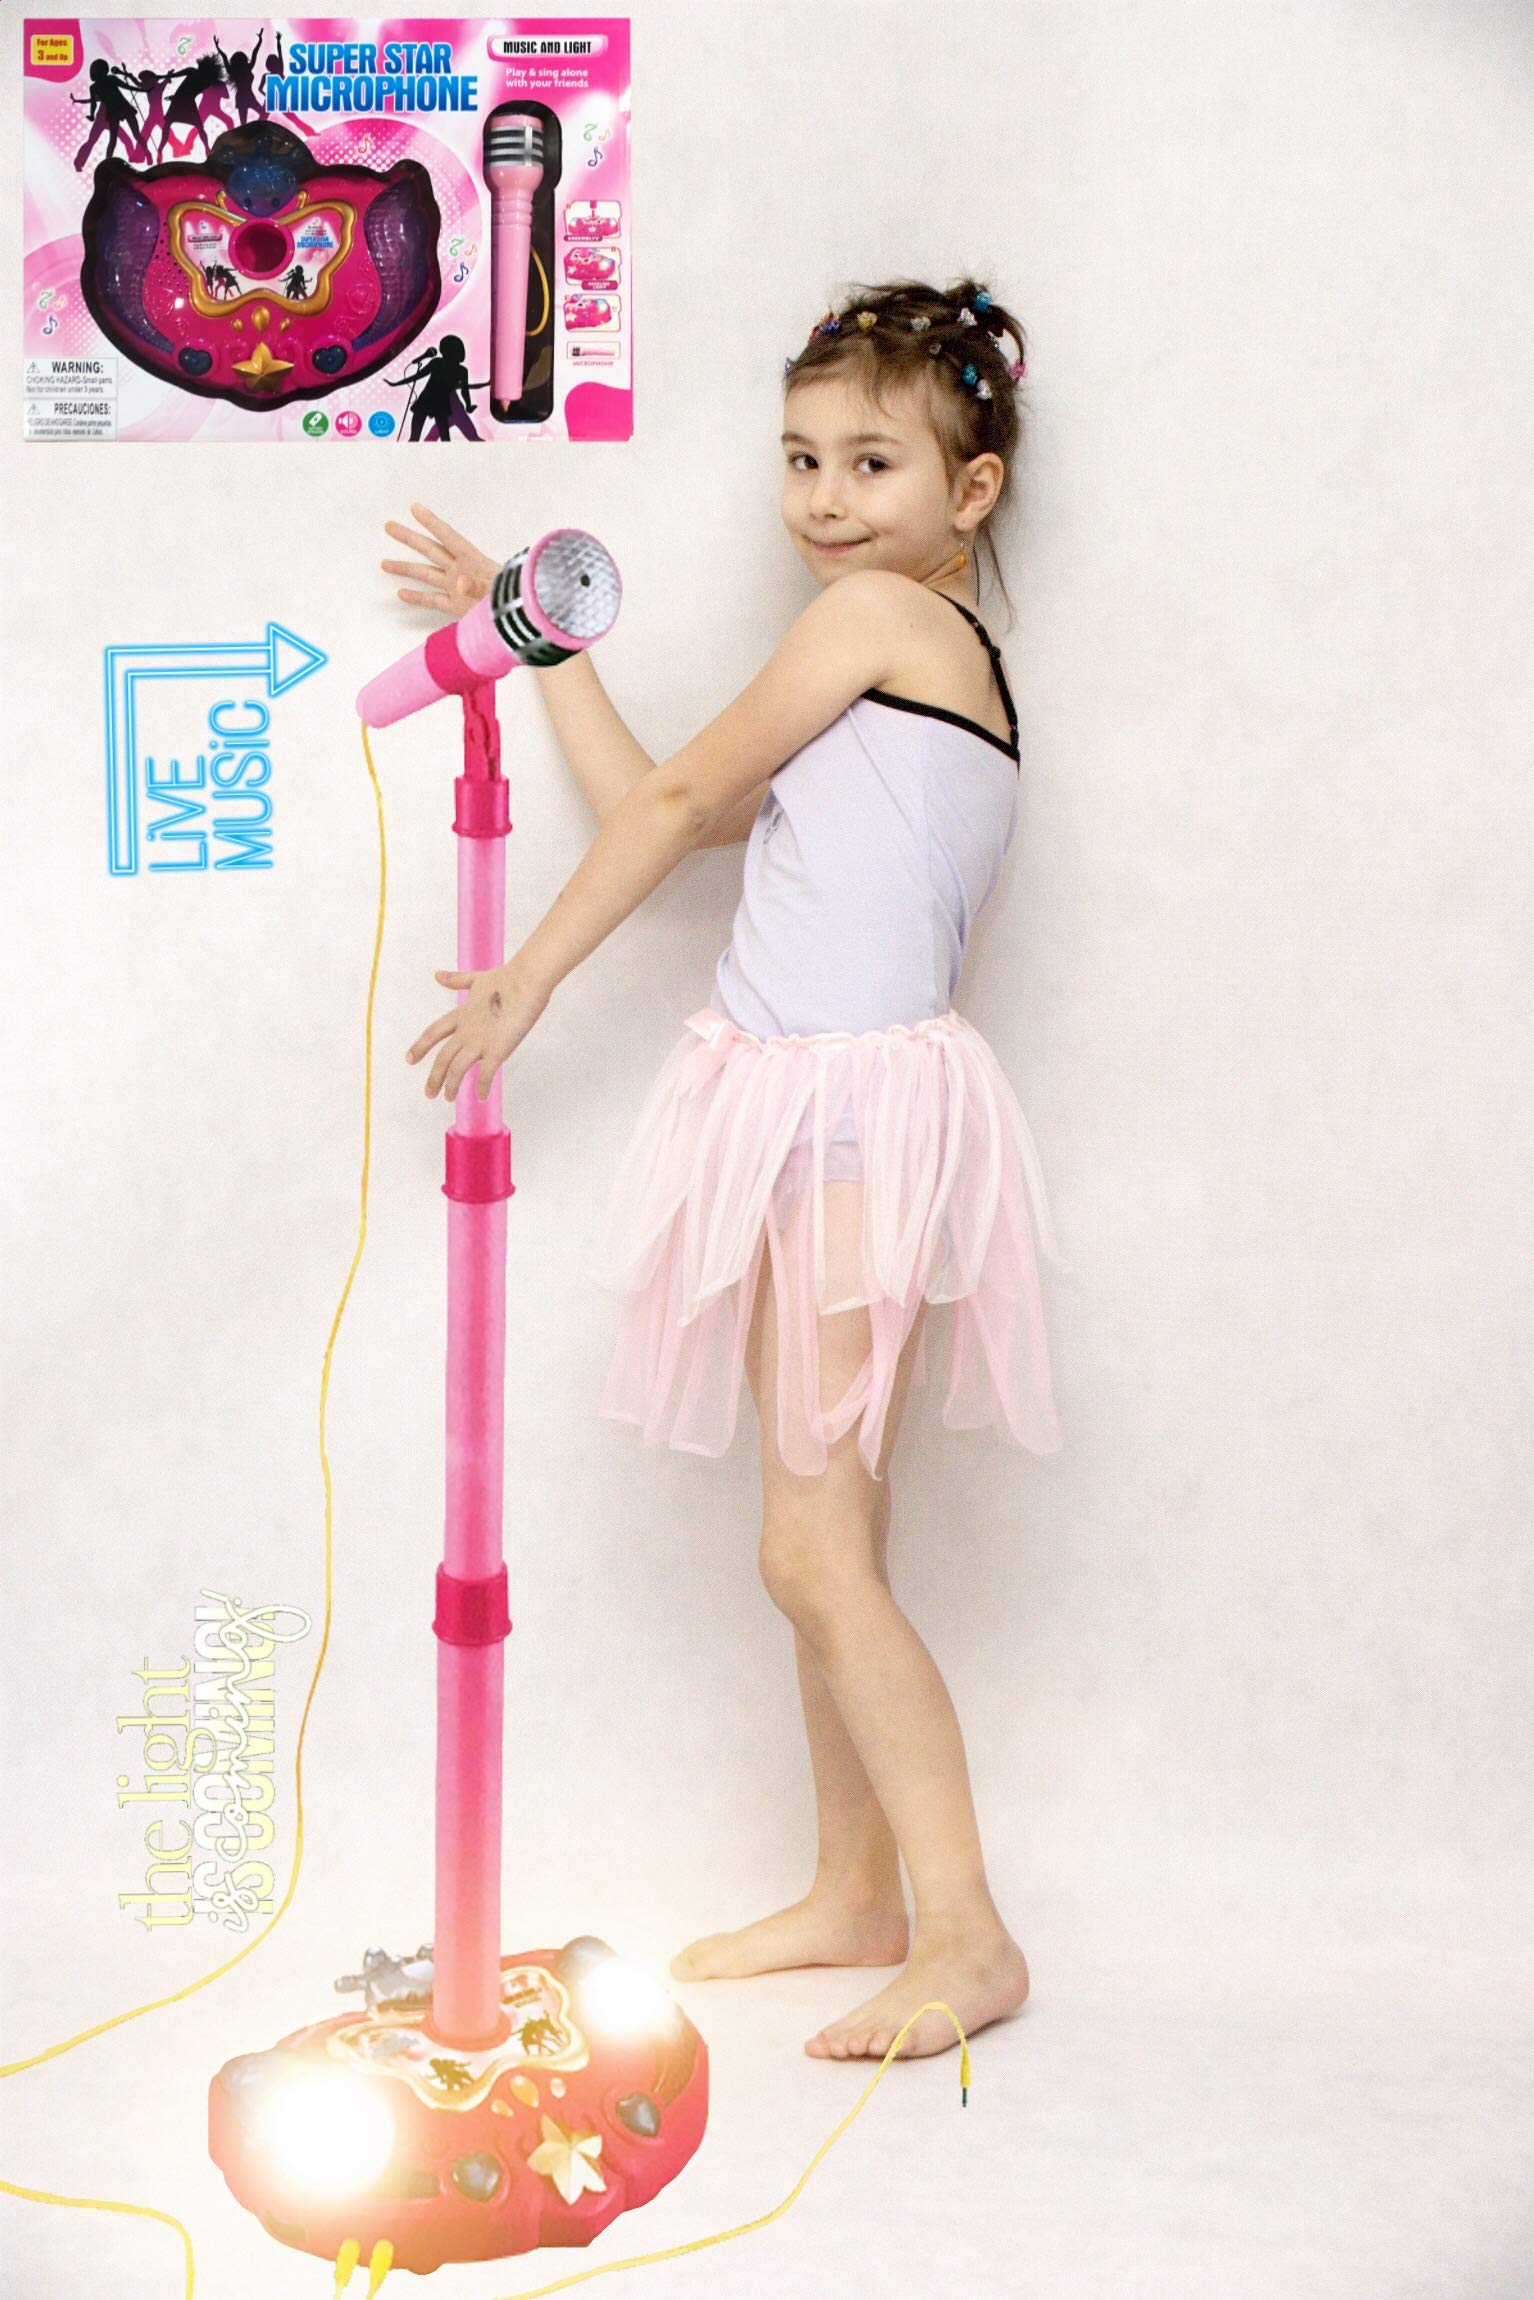 LilPals Princess Karaoke -Children's Toy Stand Up Microphone Play Set w/ Built-in MP3 Player, Speaker, Adjustable Height (Pink) by LilPals (Image #4)